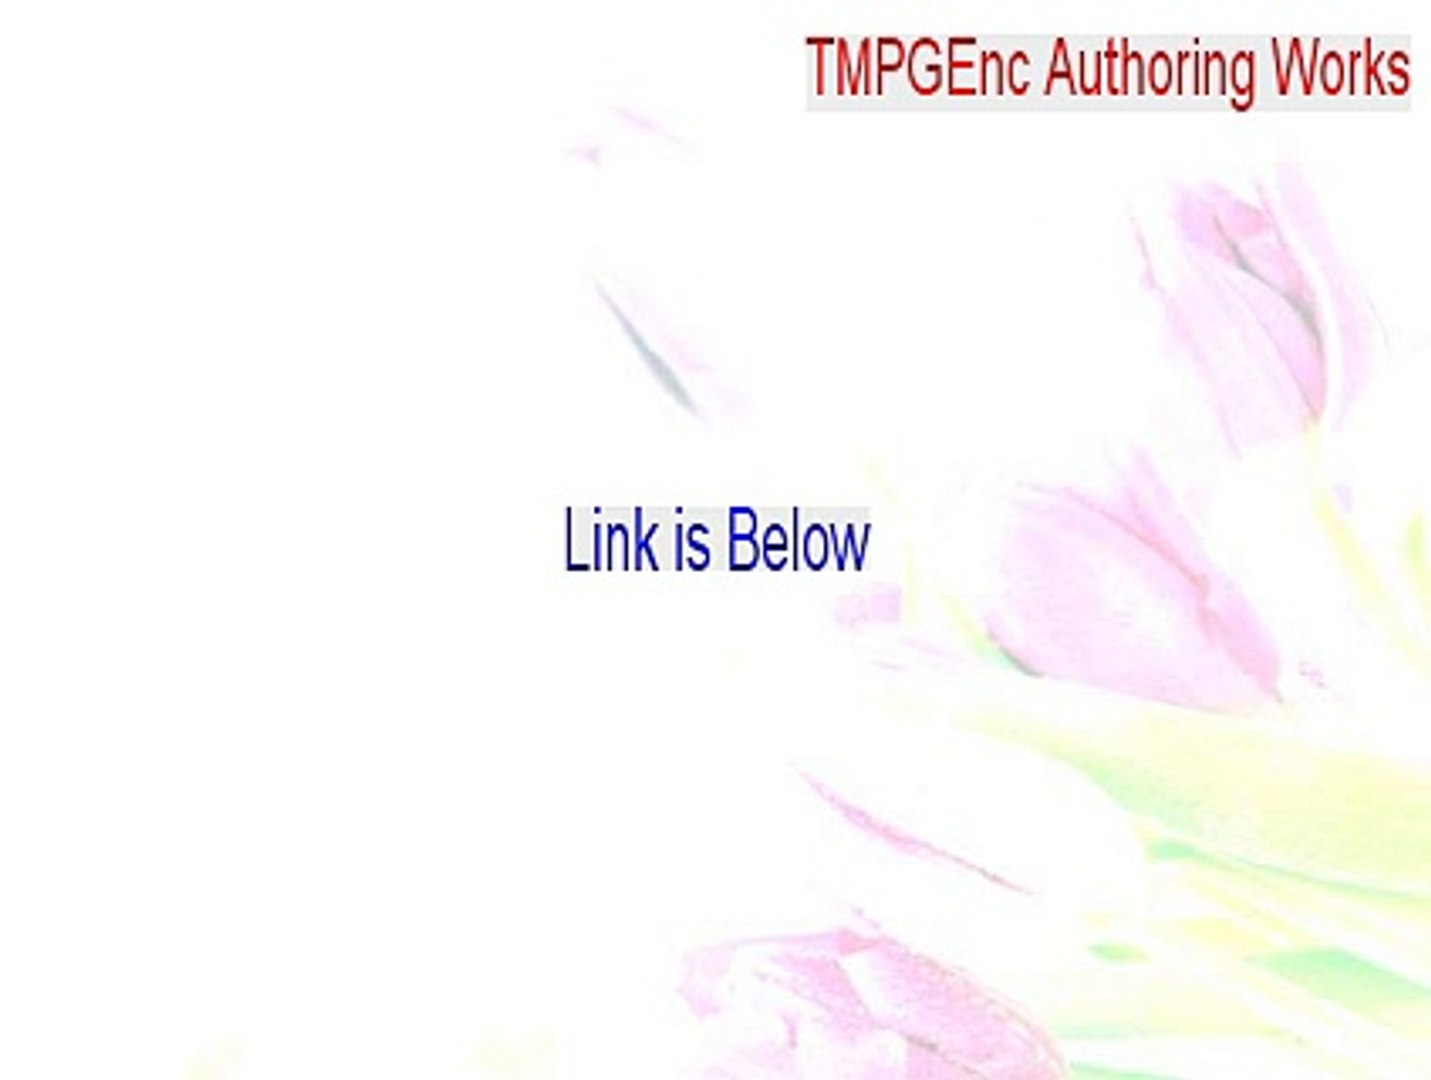 tmpgenc authoring works 5 free download